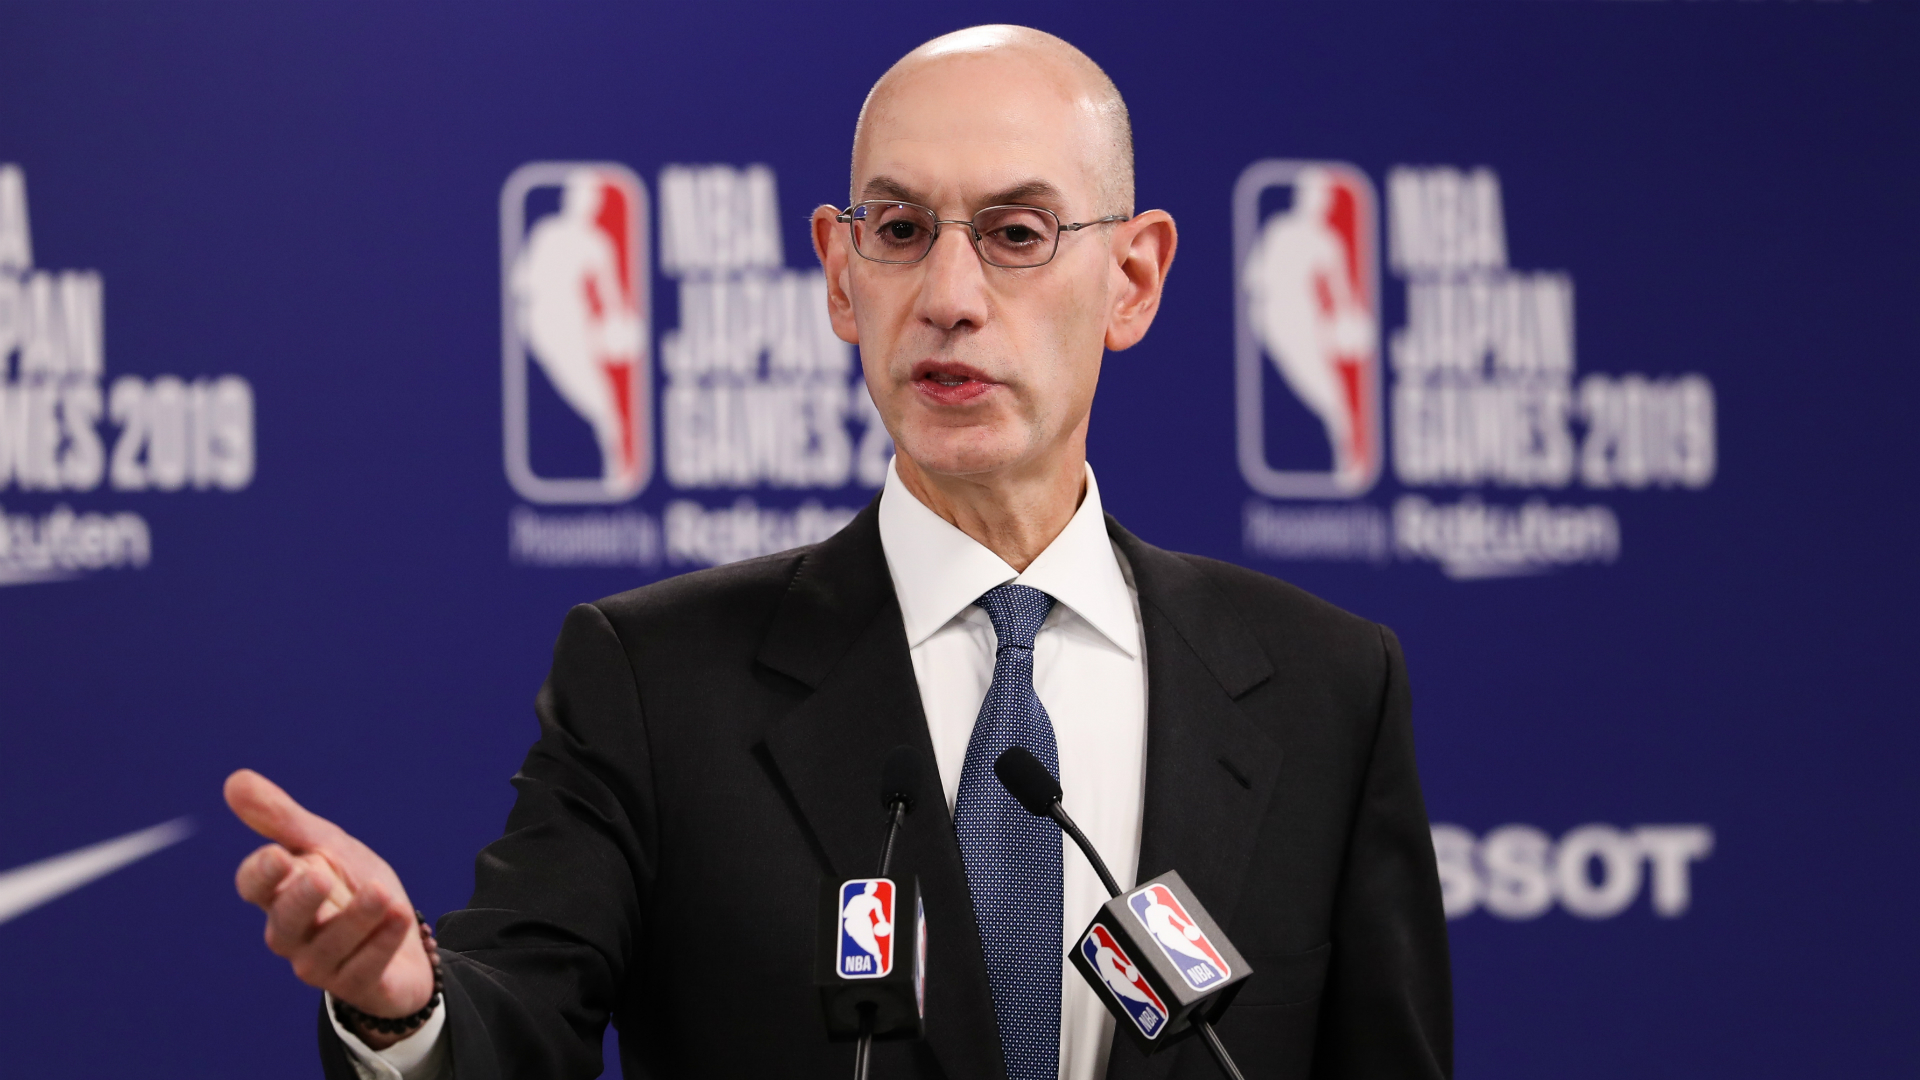 China wants NBA commissioner Adam Silver to face 'retribution' for support of Rockets' Daryl Morey